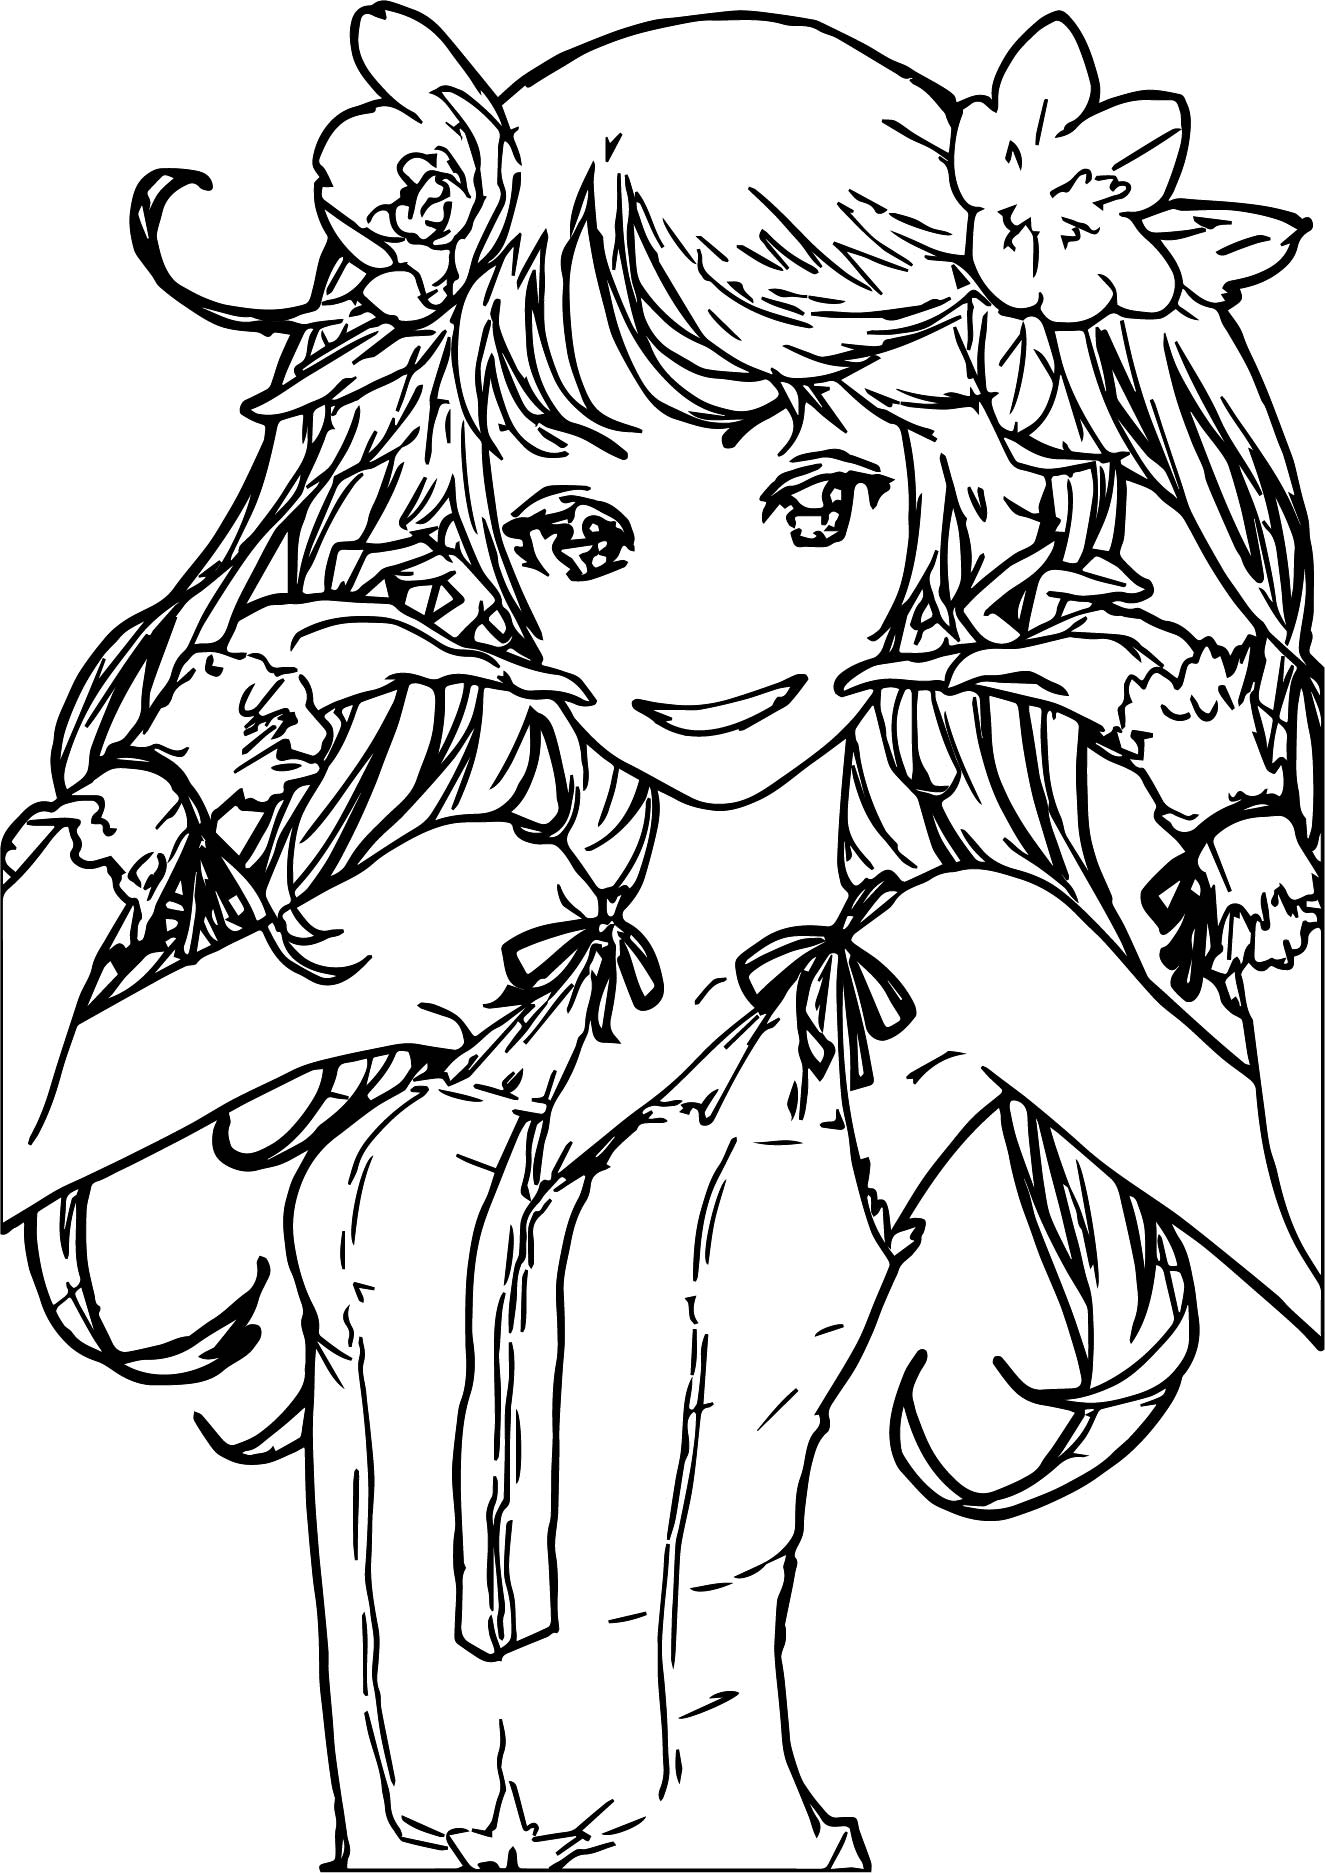 Amazoncom anime coloring Apps amp Games